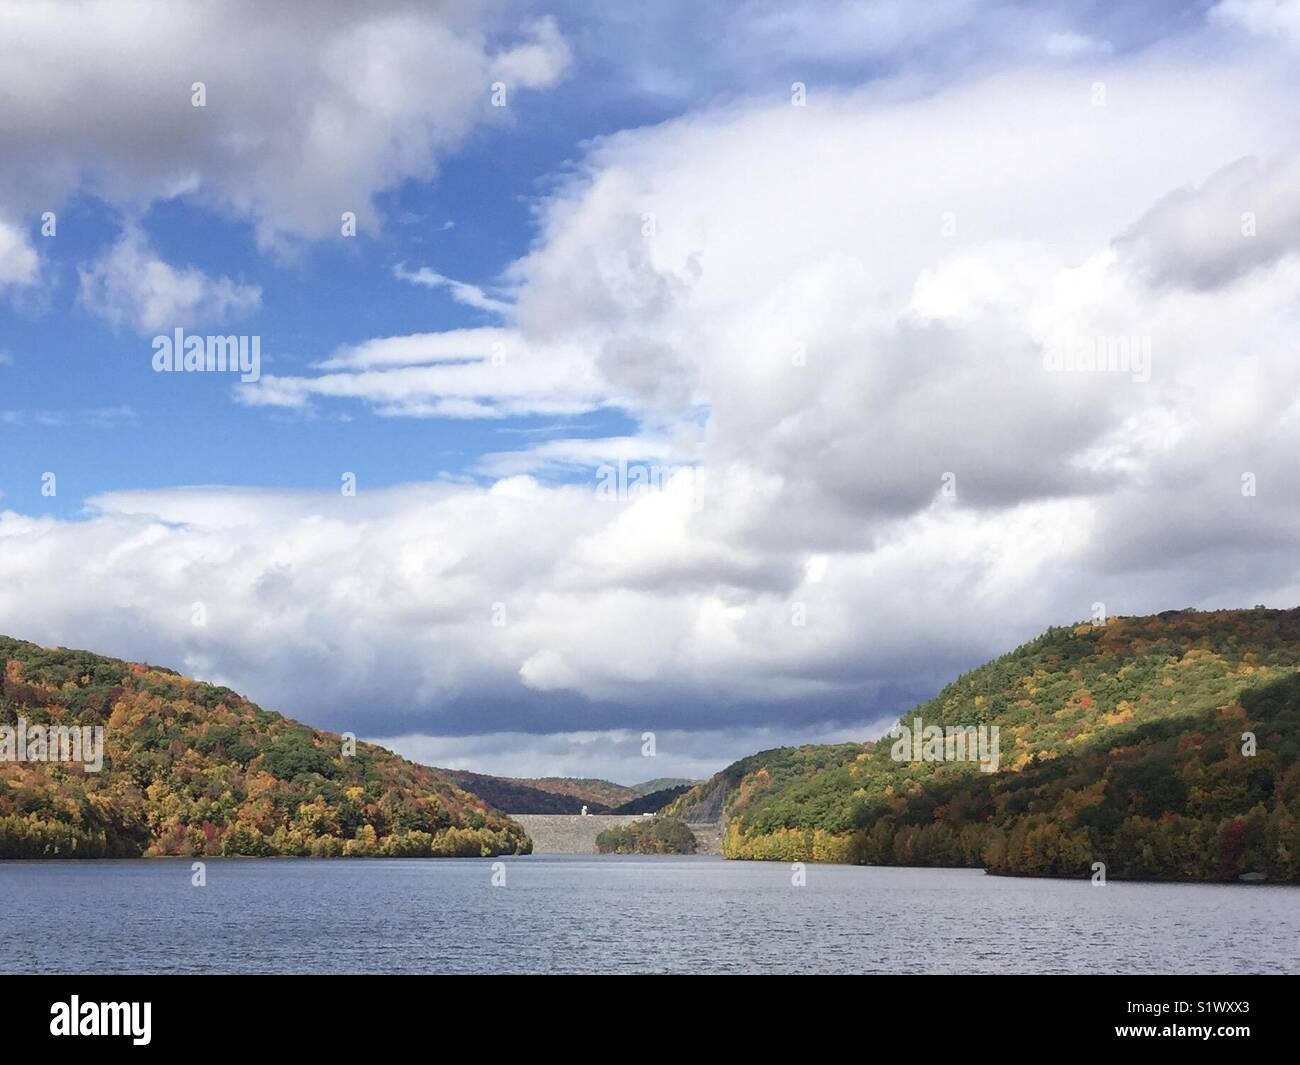 Lake during fall foliage - Stock Image